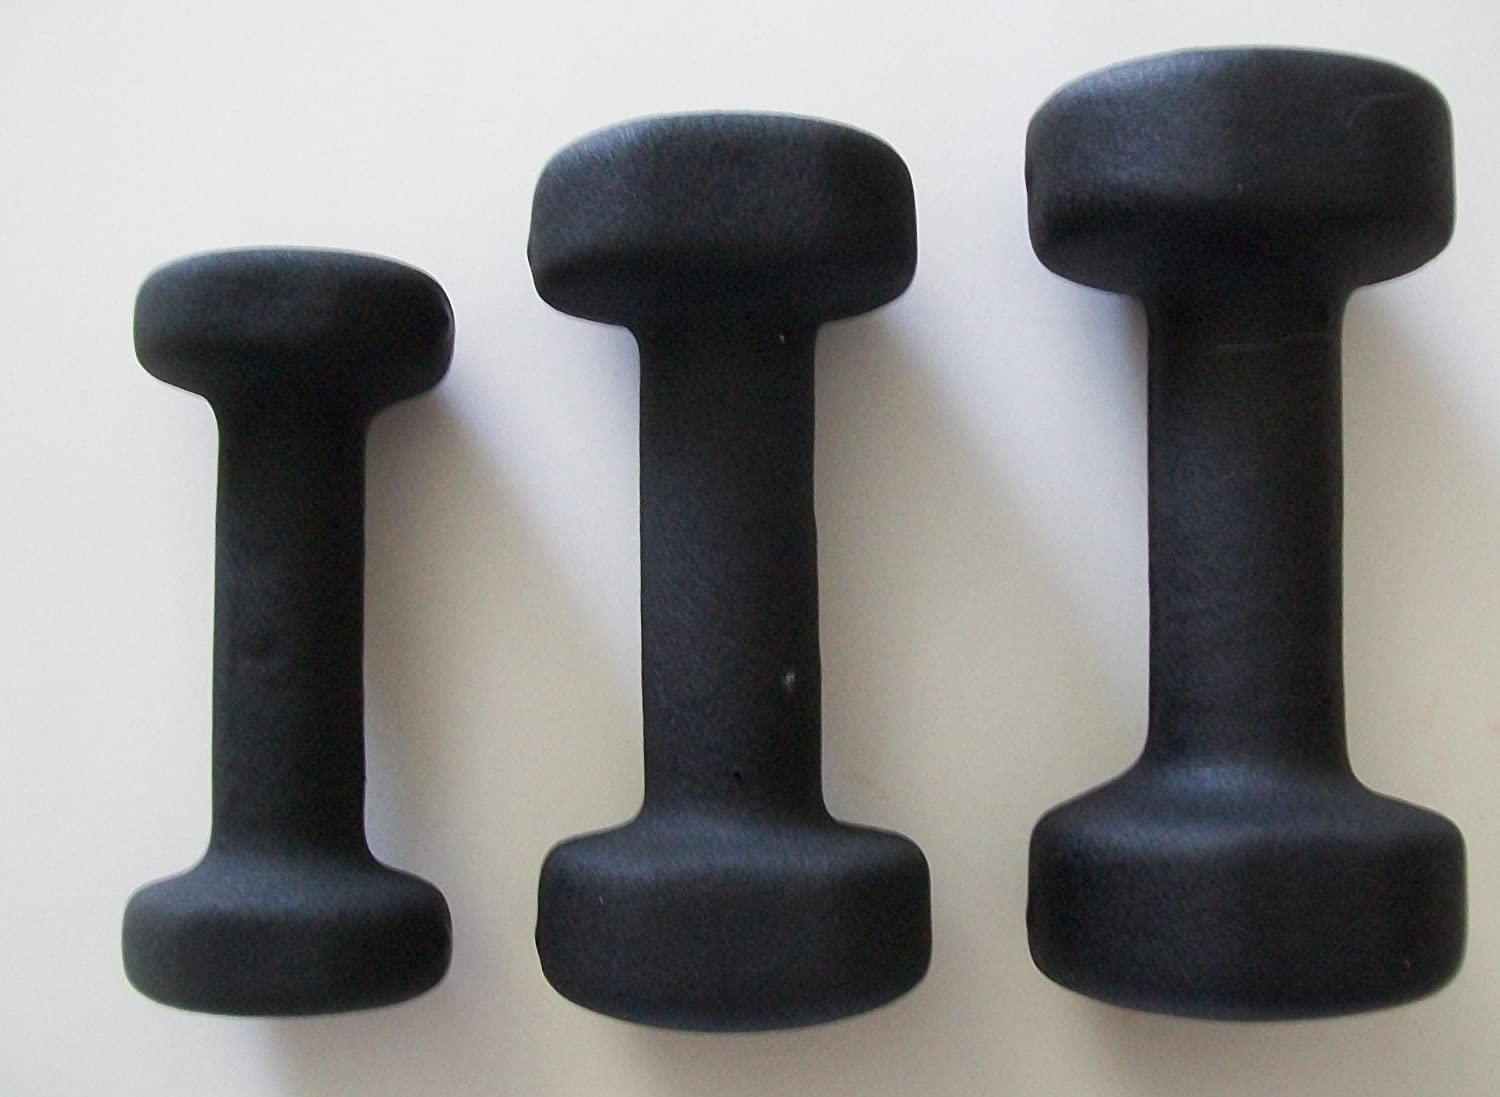 Kamparts 3 lb, 5 lb, and 8 lb. Black Neoprene Covered Dumbbell Set 3 Pairs